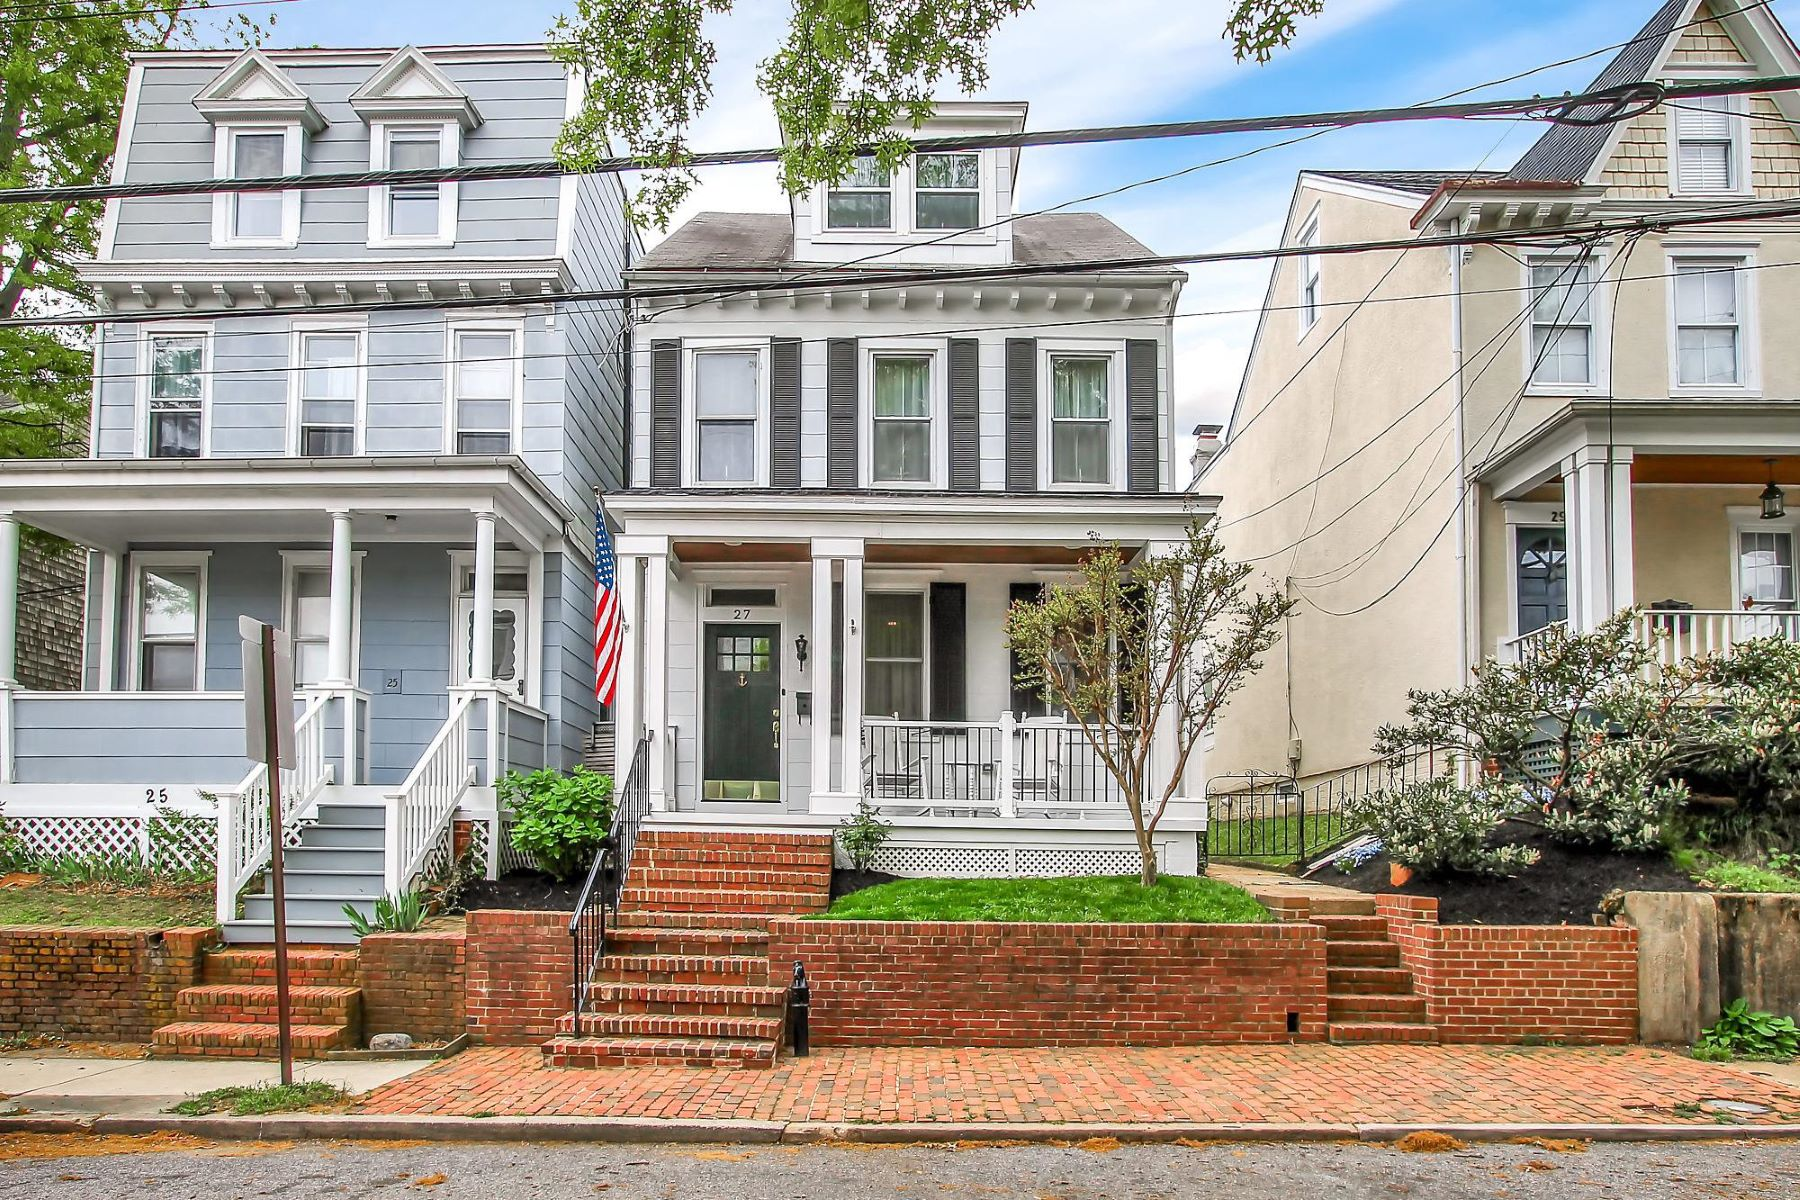 Single Family Homes for Sale at 27 Murray Ave Annapolis, Maryland 21401 United States